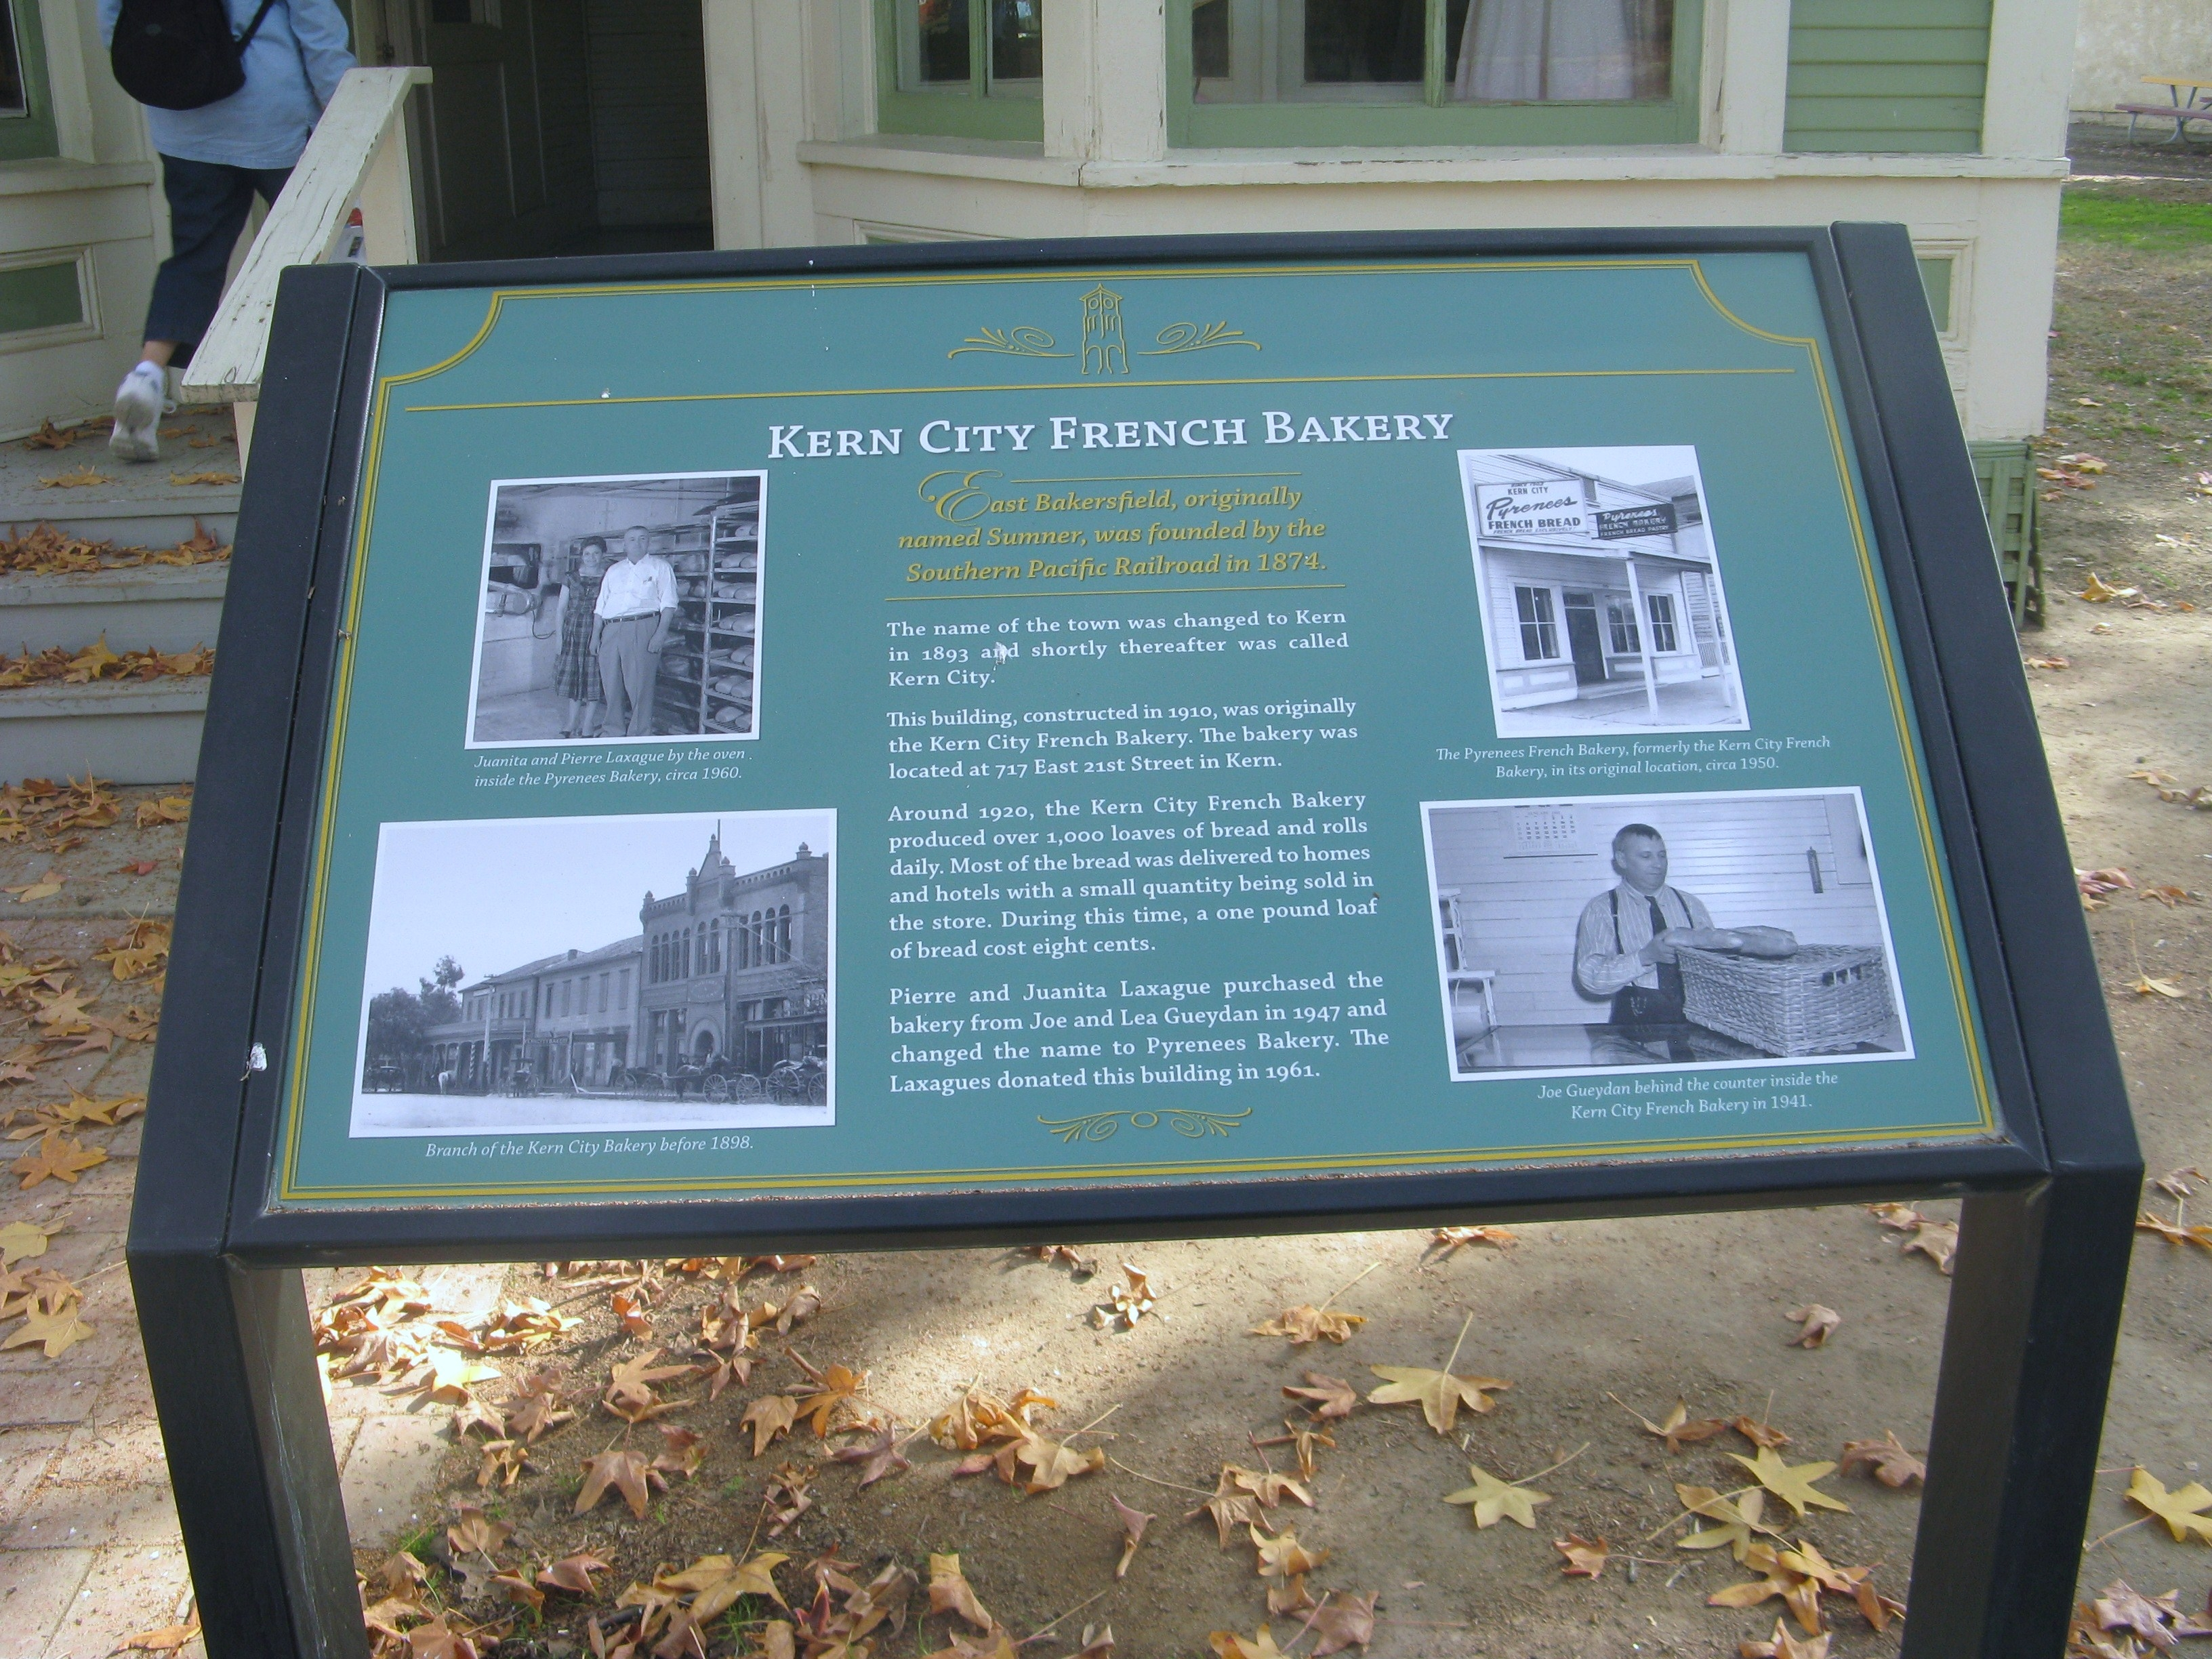 Kern City French Bakery Marker